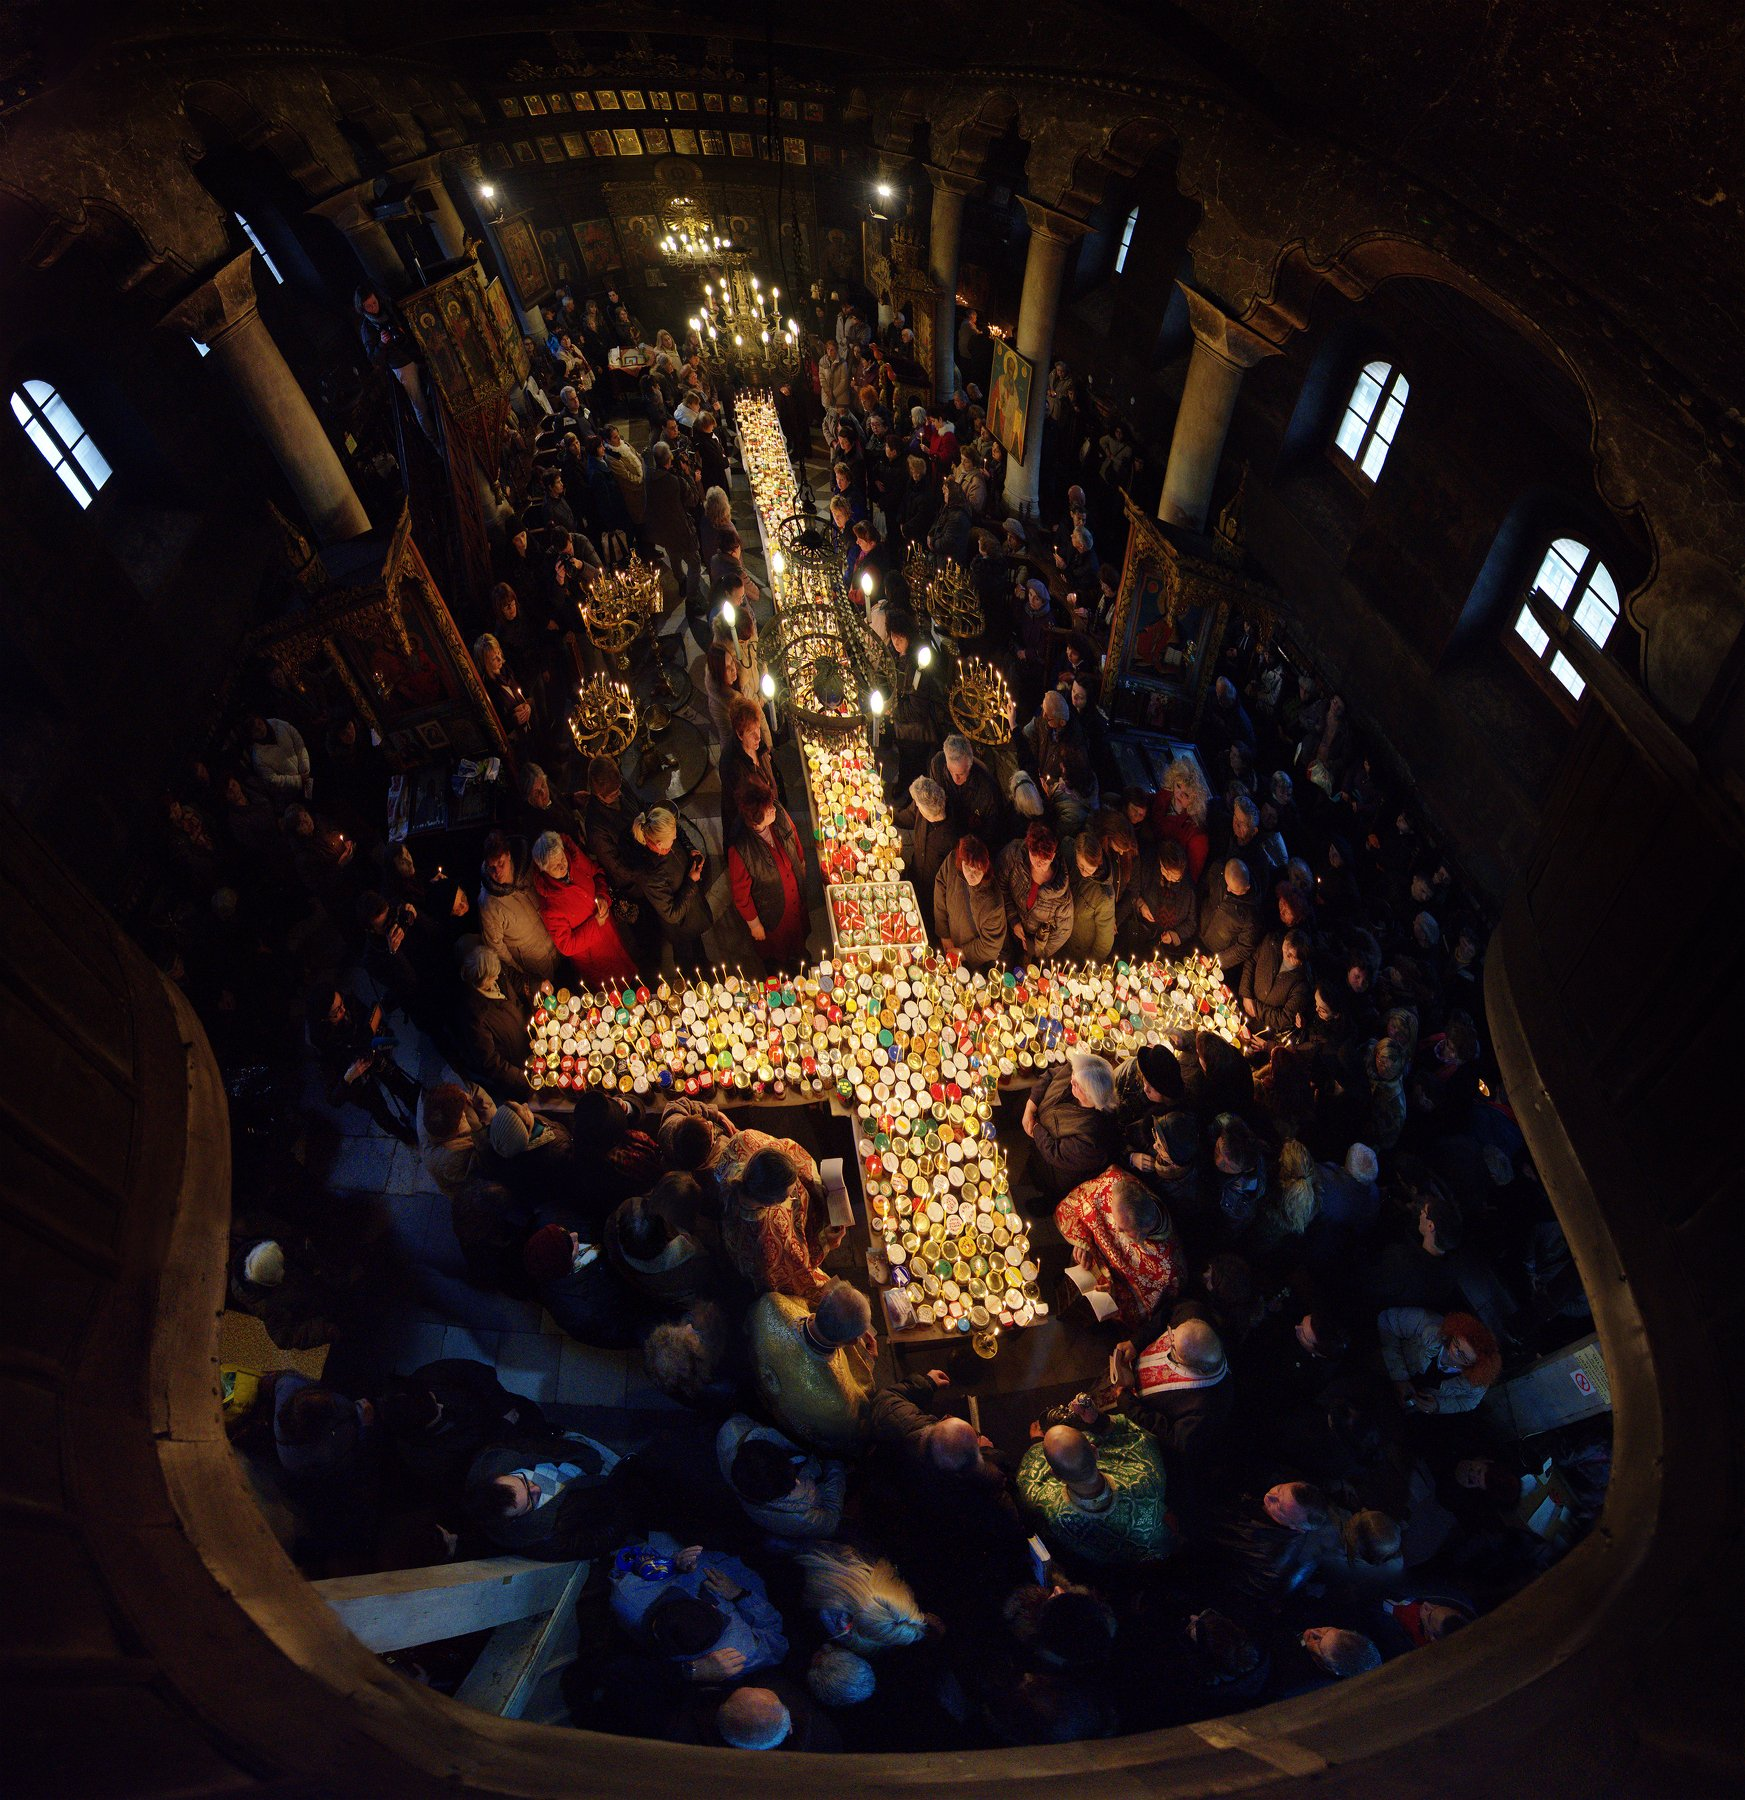 charalambos, liturgy, cross, candles, church, christian, tradition, travel, Руслан Асанов